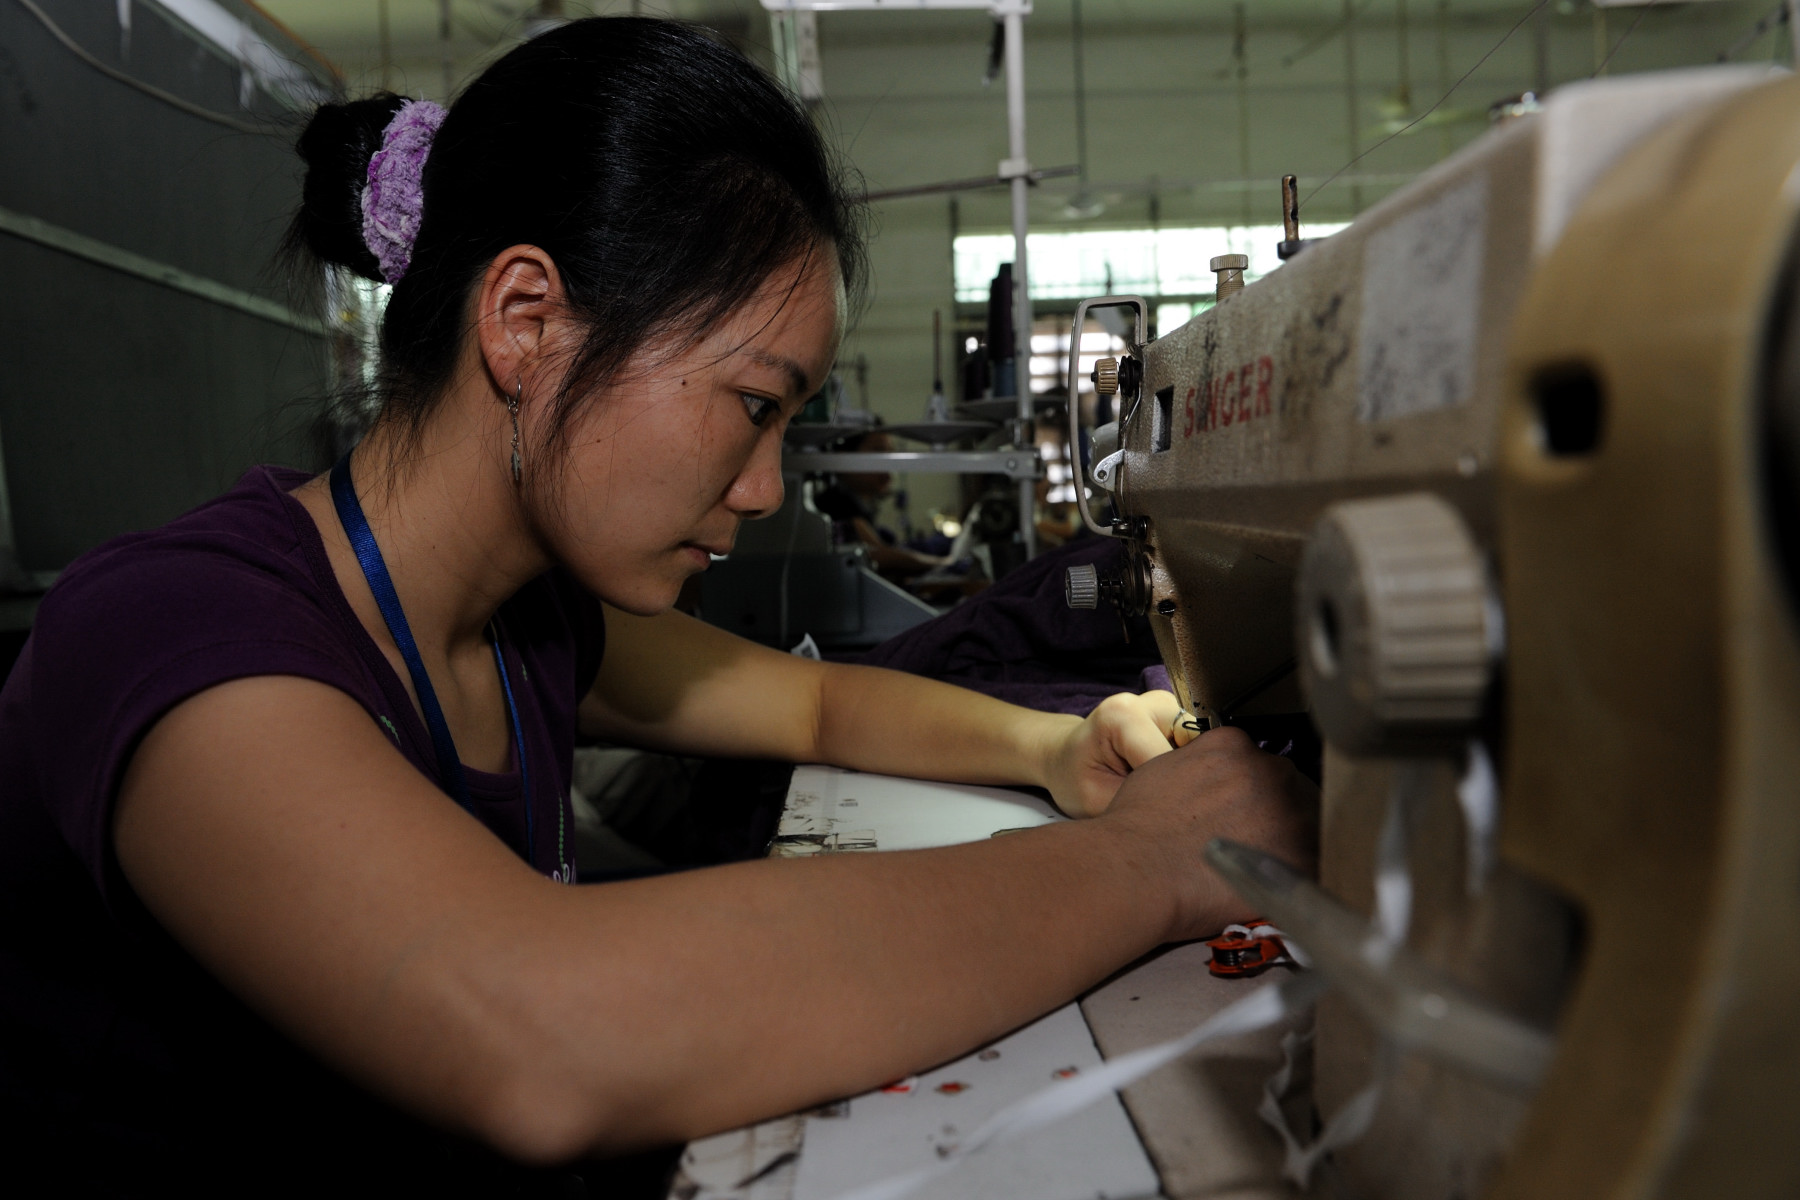 The clothing factory employs 2000 migrant workers.